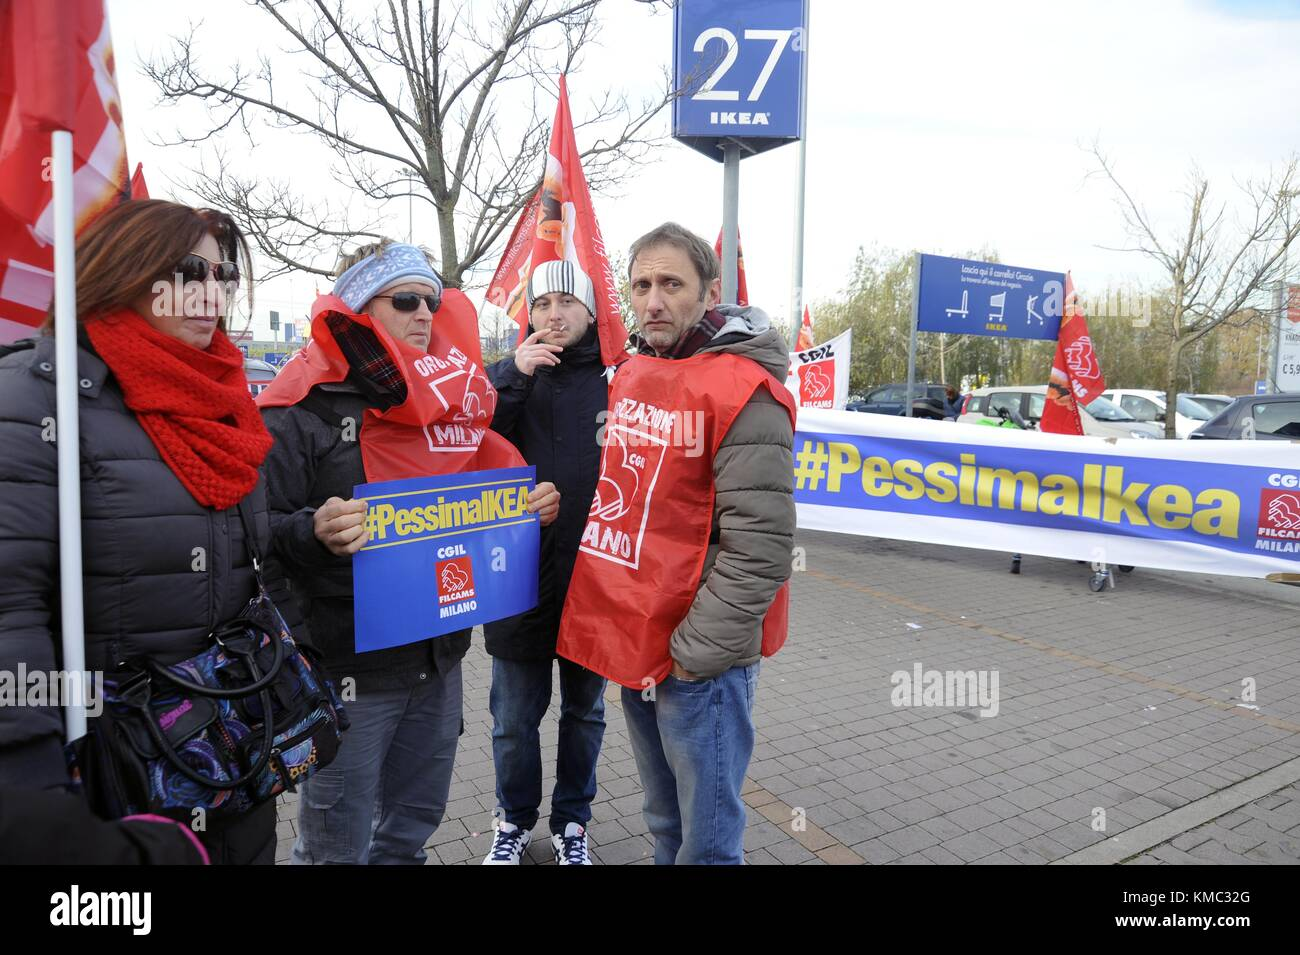 Protest by CGIL union to the IKEA in Corsico (East Milan perifery, Italy) against unjustified dismissals. - Stock Image